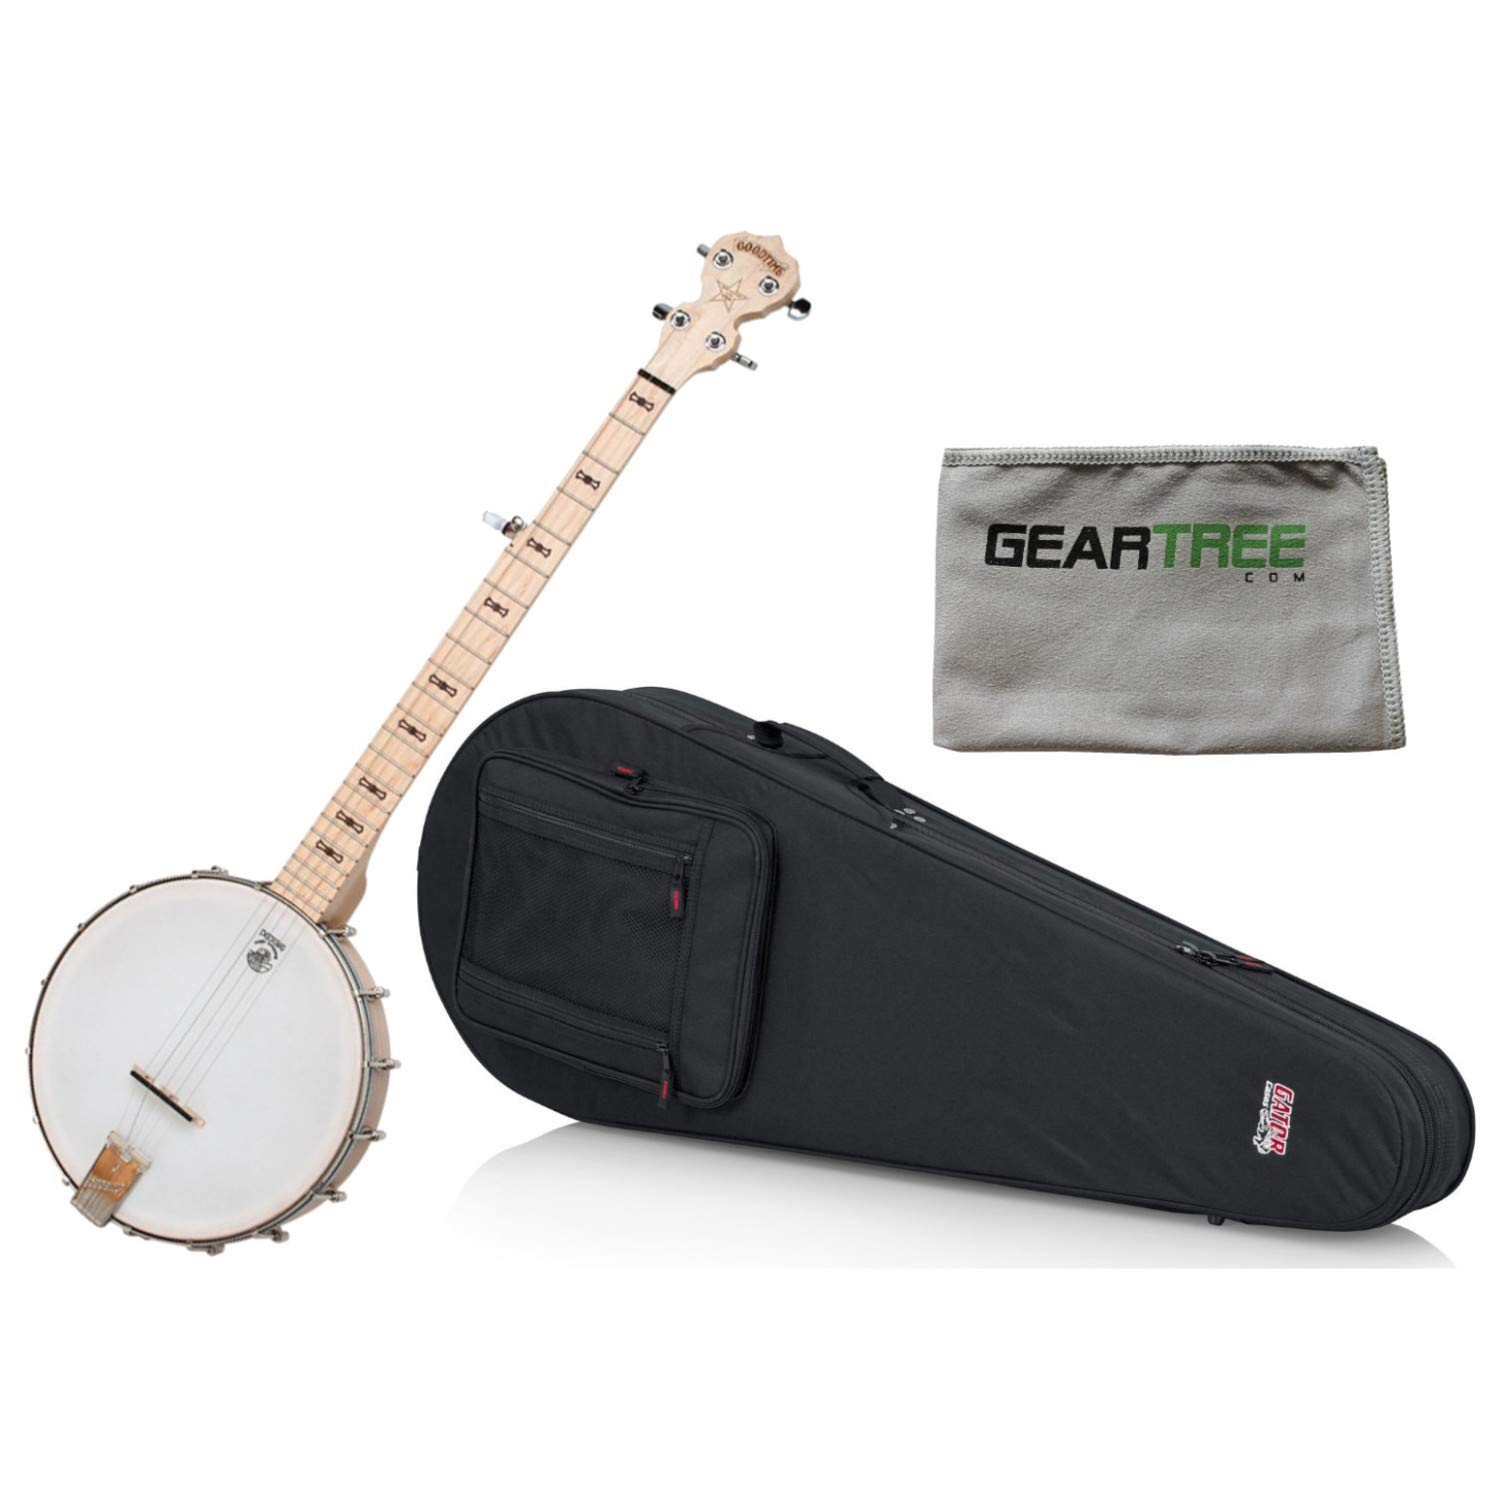 Deering Goodtime Banjo w//Lightweight Fit-All Banjo Case and Geartree Cloth